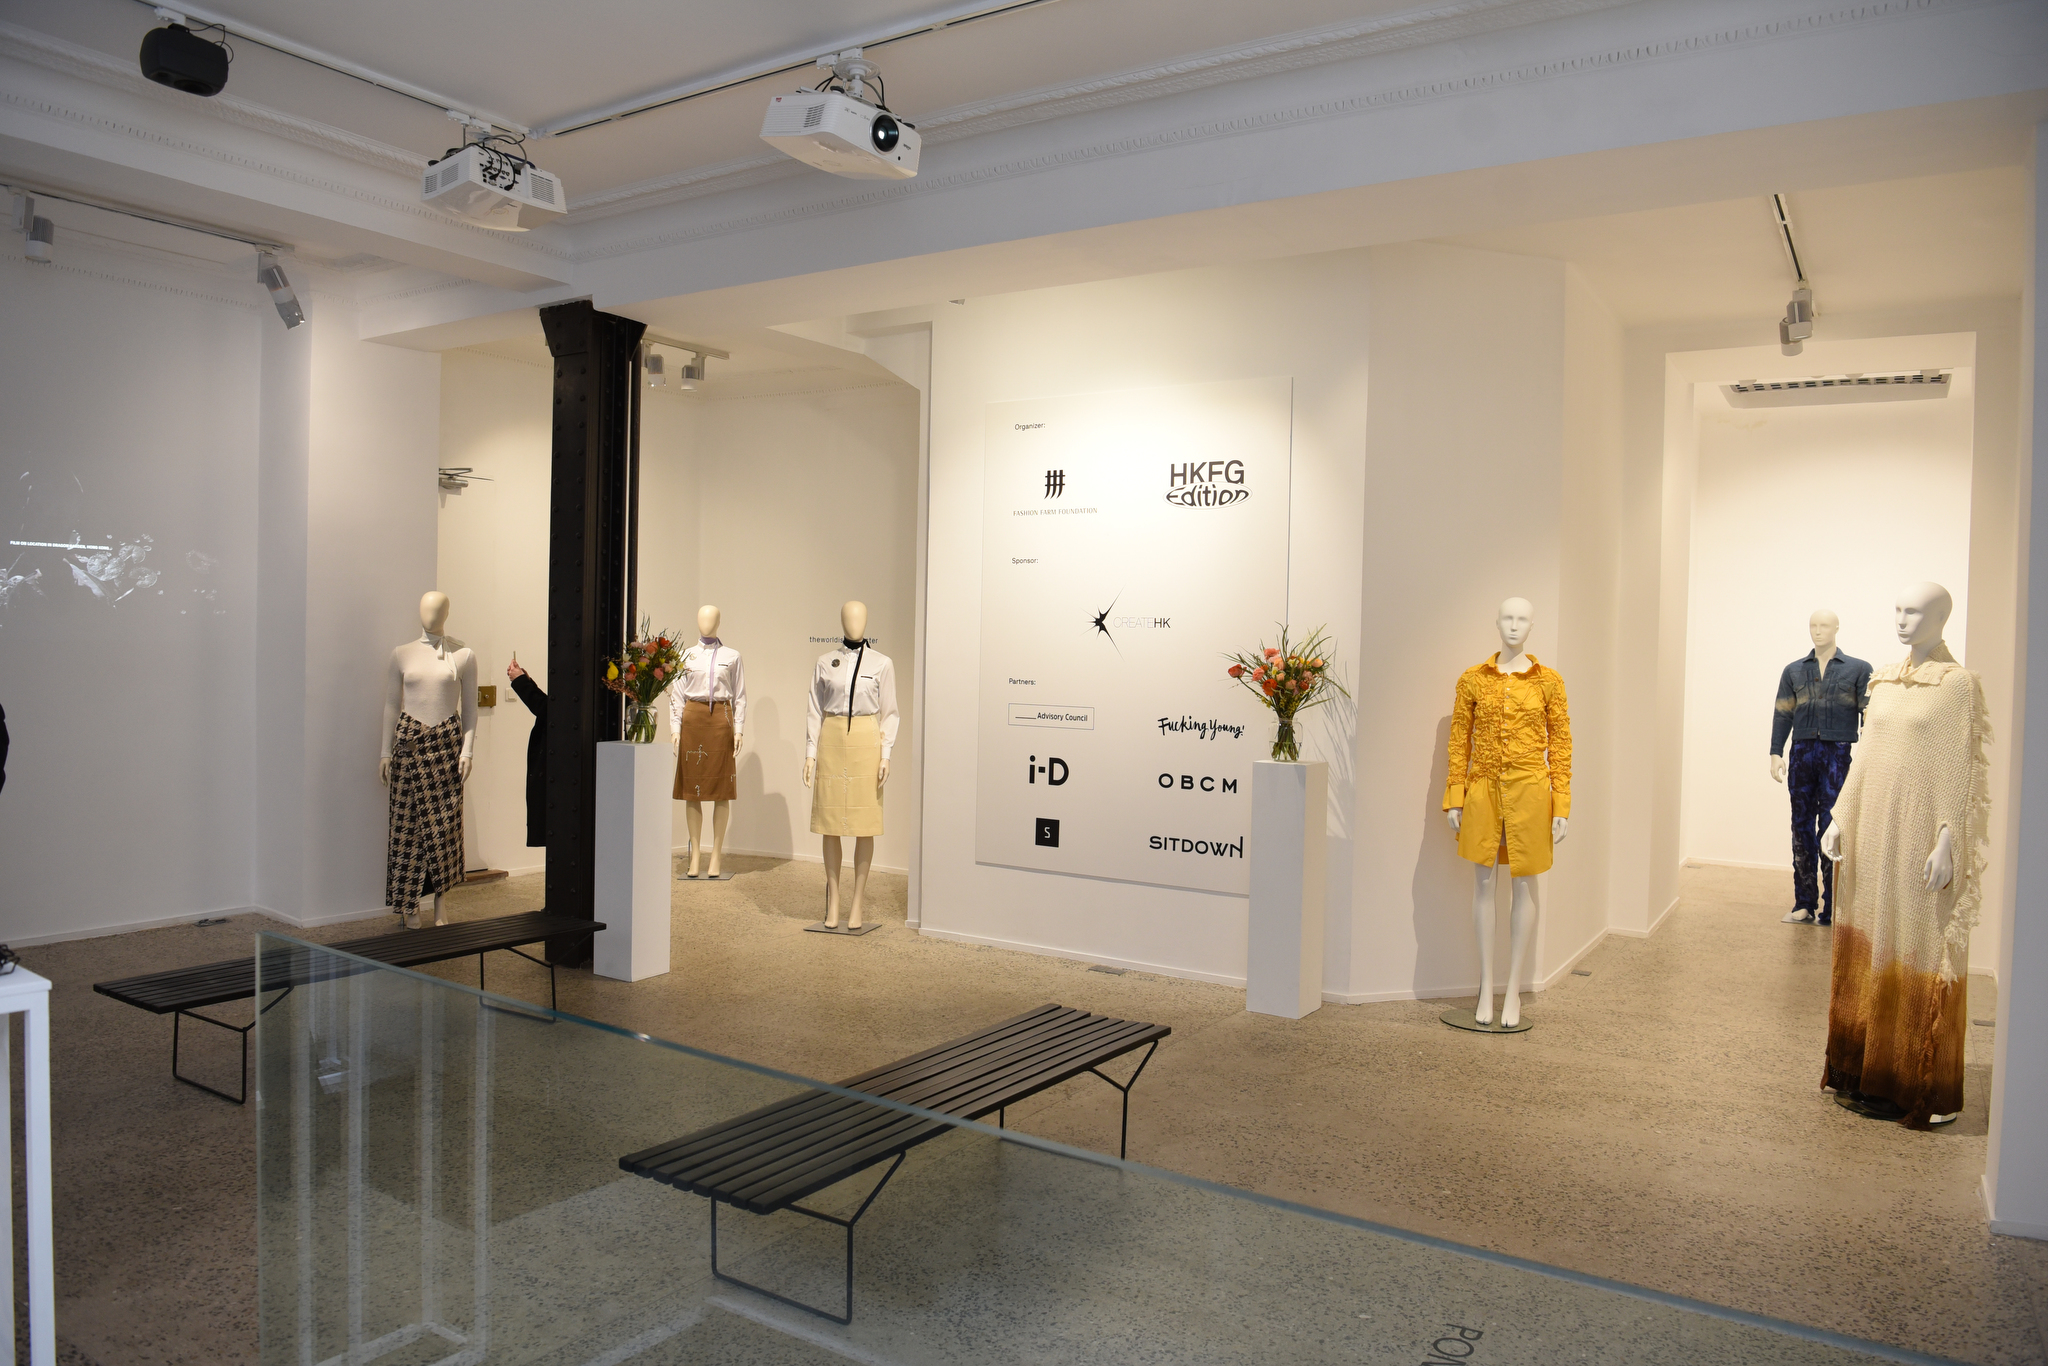 Fall 2021 HKFG presentation featuring Ponder.Er and The World is your Oyster at Galerie Joseph in Paris.